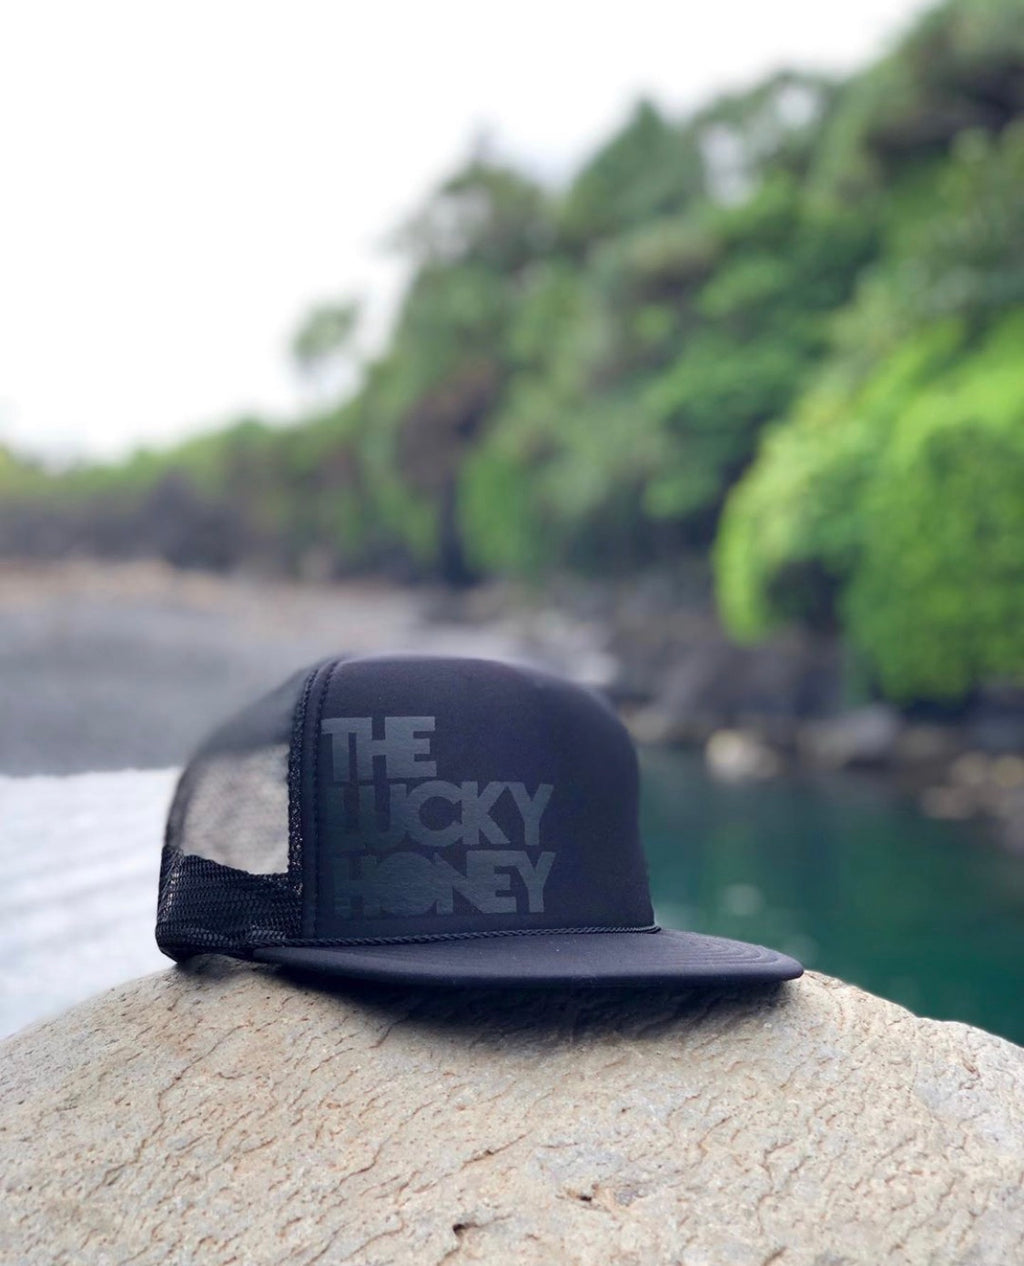 THE LUCKY HONEY Hat | Black/Black